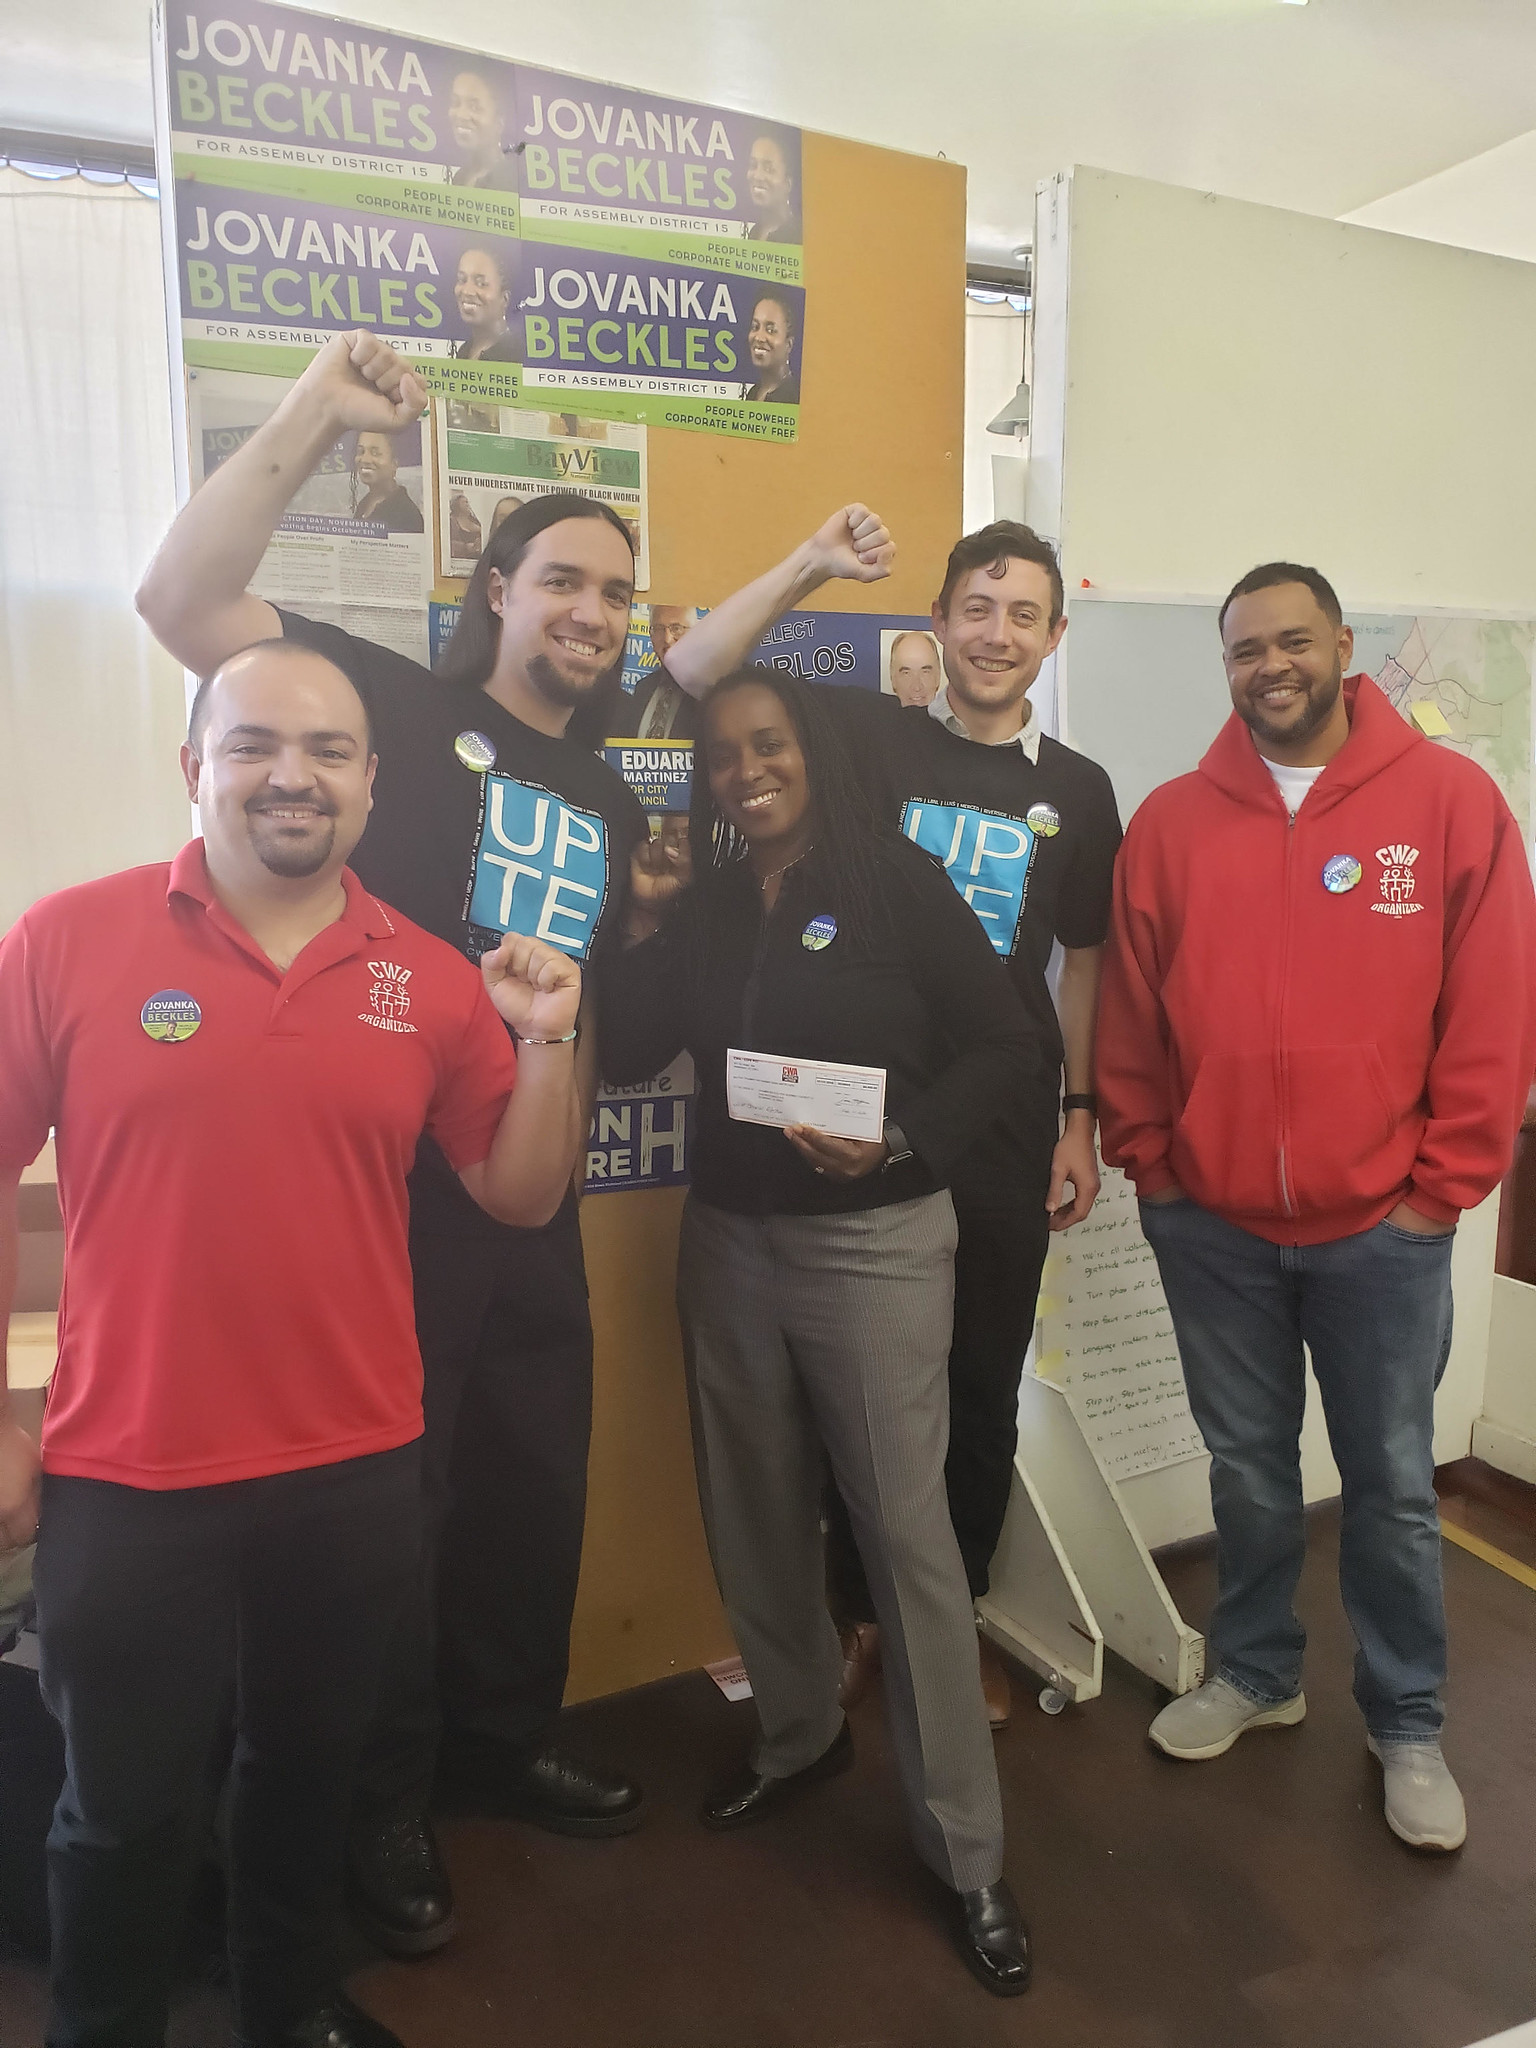 Local 9119 UPTE and 9404 with assembly candidate Jovanka Beckles!